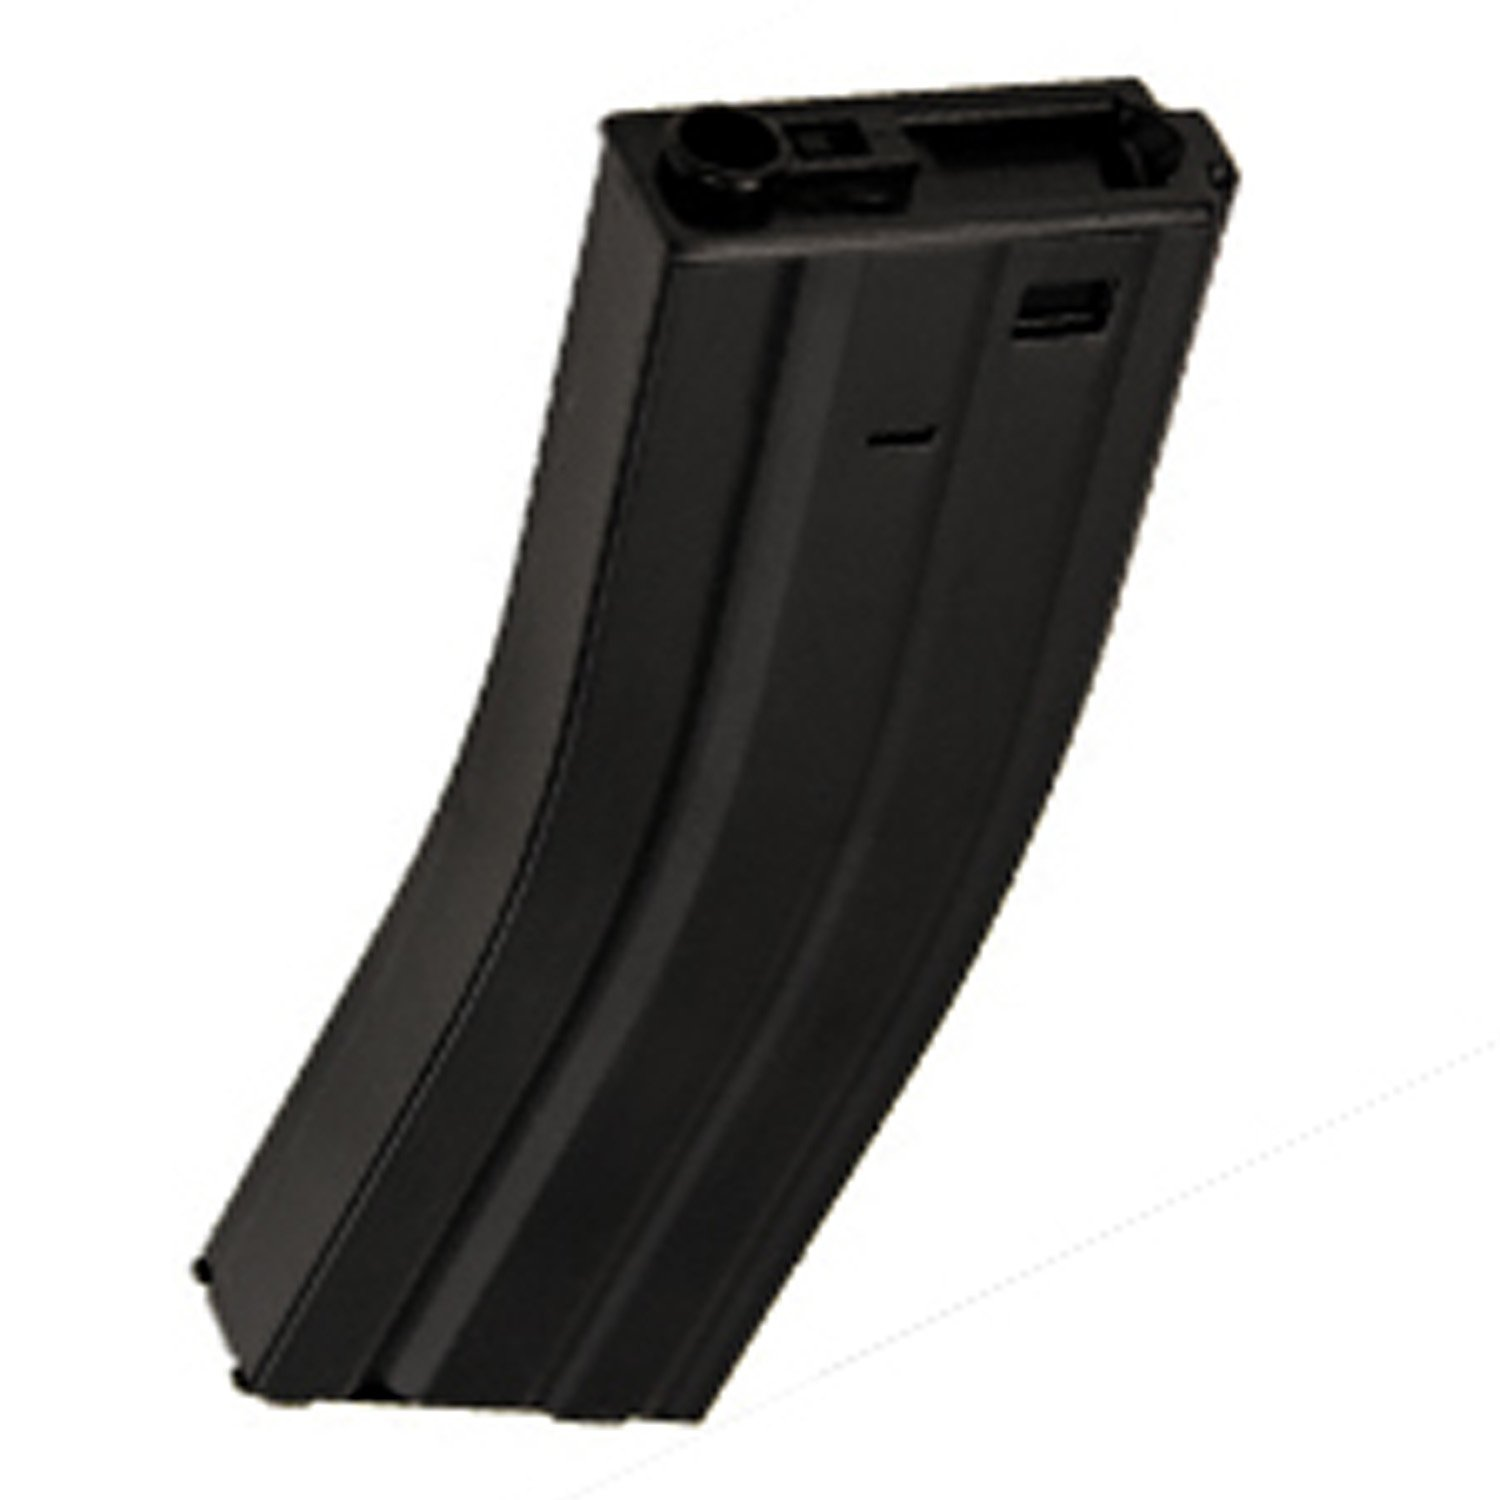 M4 / M16 - 500 Round Airsoft Hi-Cap Magazine Clip AEG Electric Rifles - METAL